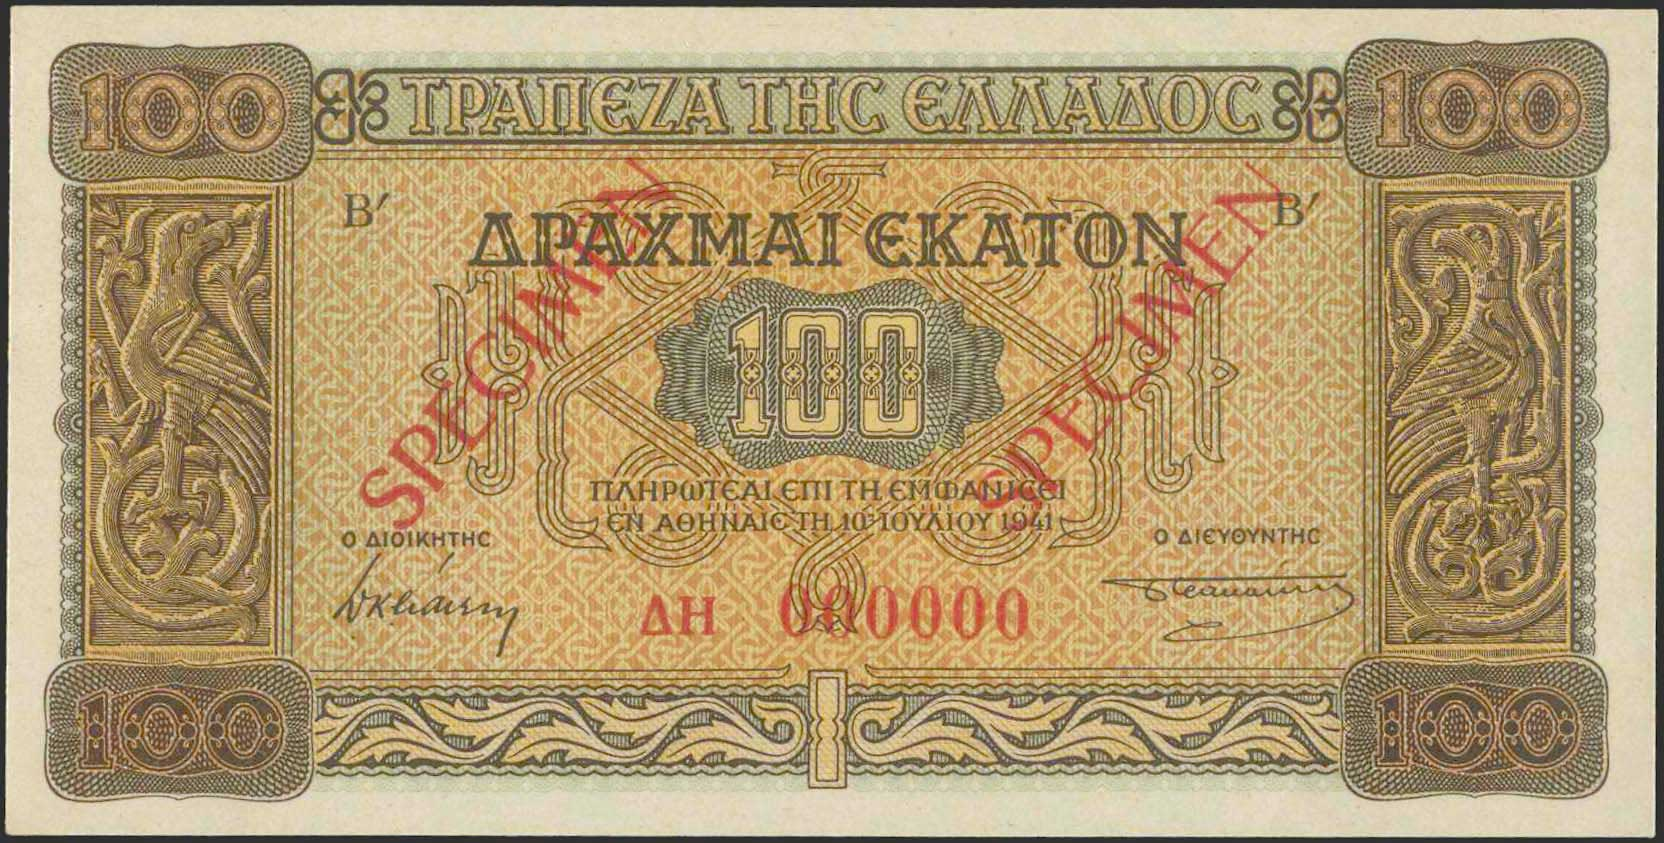 Lot 9319 - GREECE-  PAPER MONEY - BANKNOTES WWII  issued  banknotes -  A. Karamitsos Public & LIVE Bid Auction 610 Coins, Medals & Banknotes